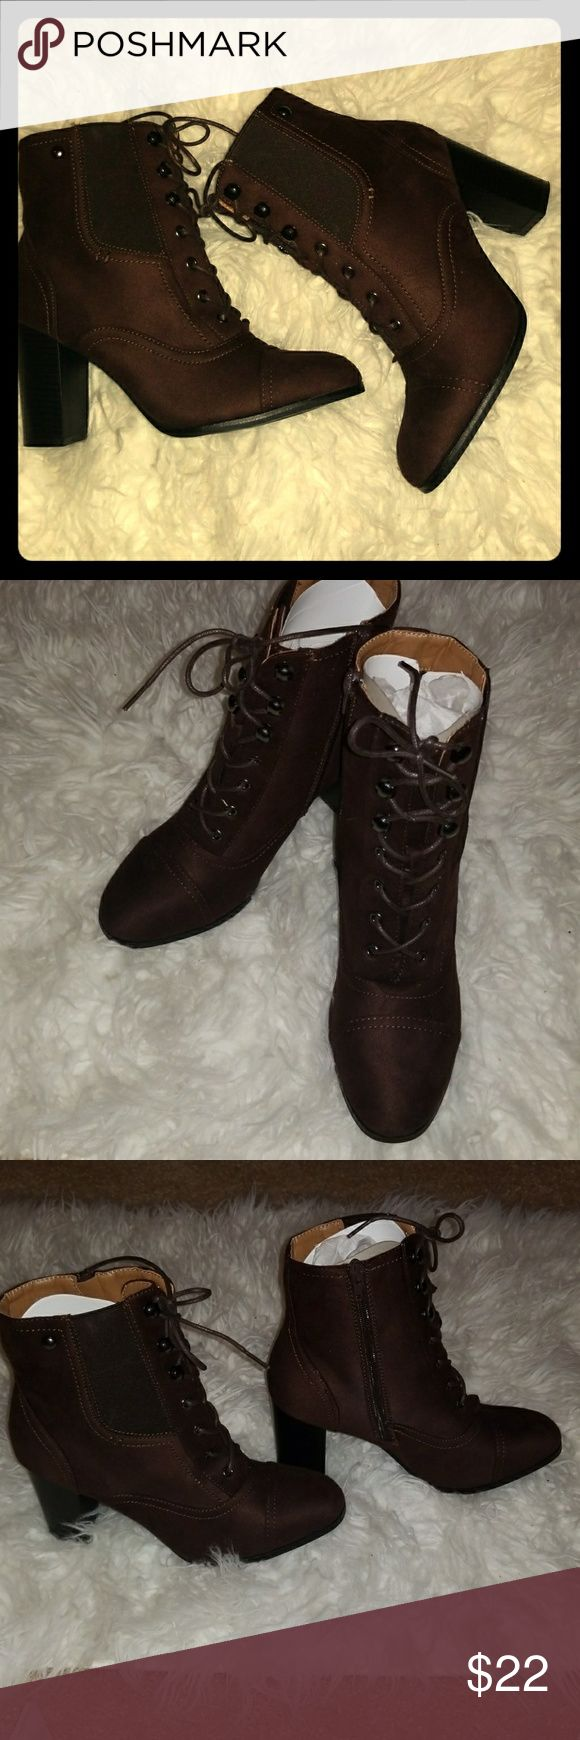 Brand New in Box Brown Ankle Booties Size 8 1/2 Brand new Hot Kiss Brown almond toe ankle Booties. Super cute and comfortable. I have a pair and bought these for my sister in laws bday but they do not fit her. Note:they run small. More like an 8. Hot Kiss Shoes Ankle Boots & Booties